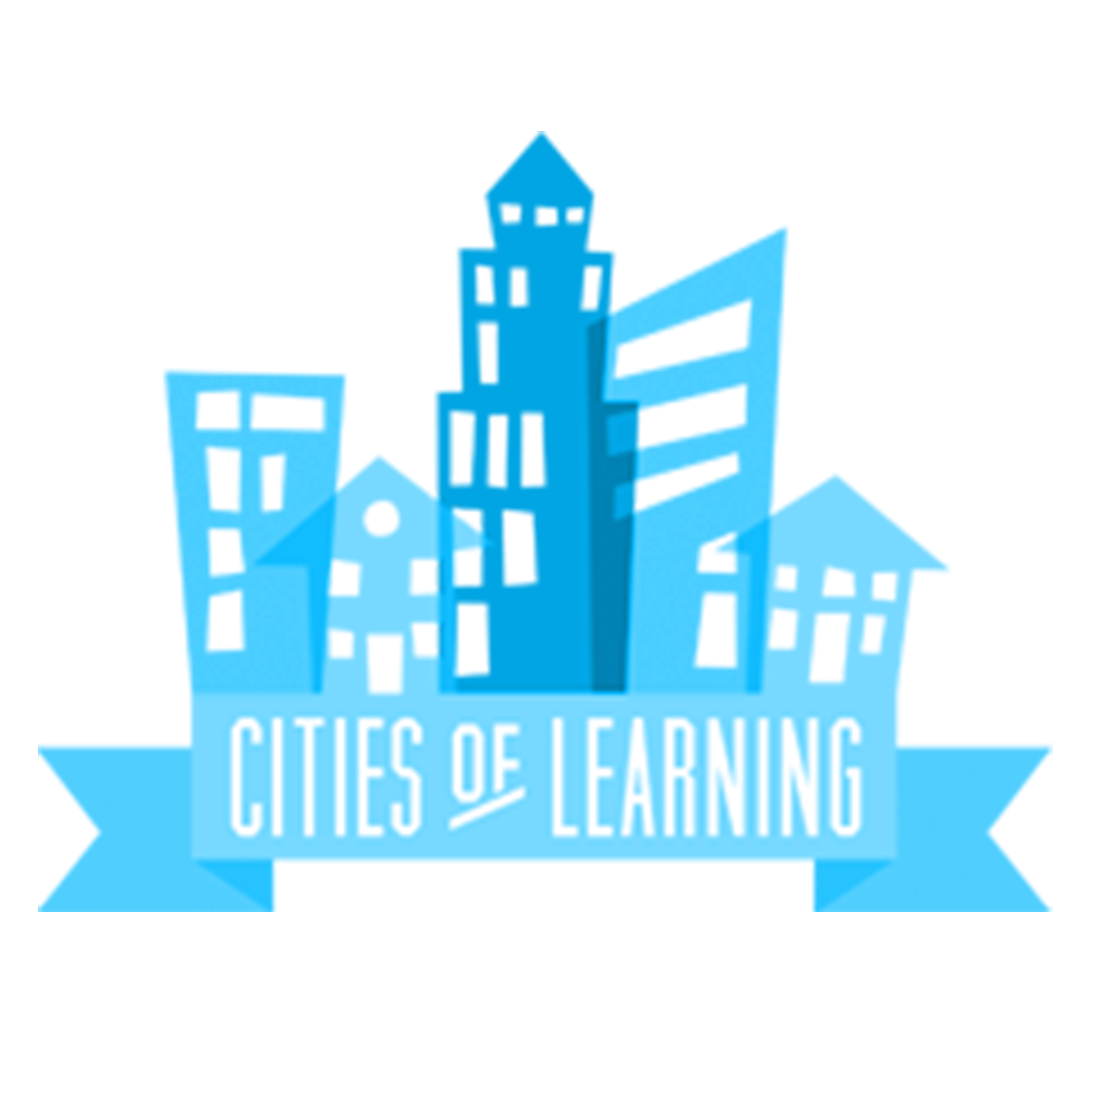 Cities-Of-Learning.png